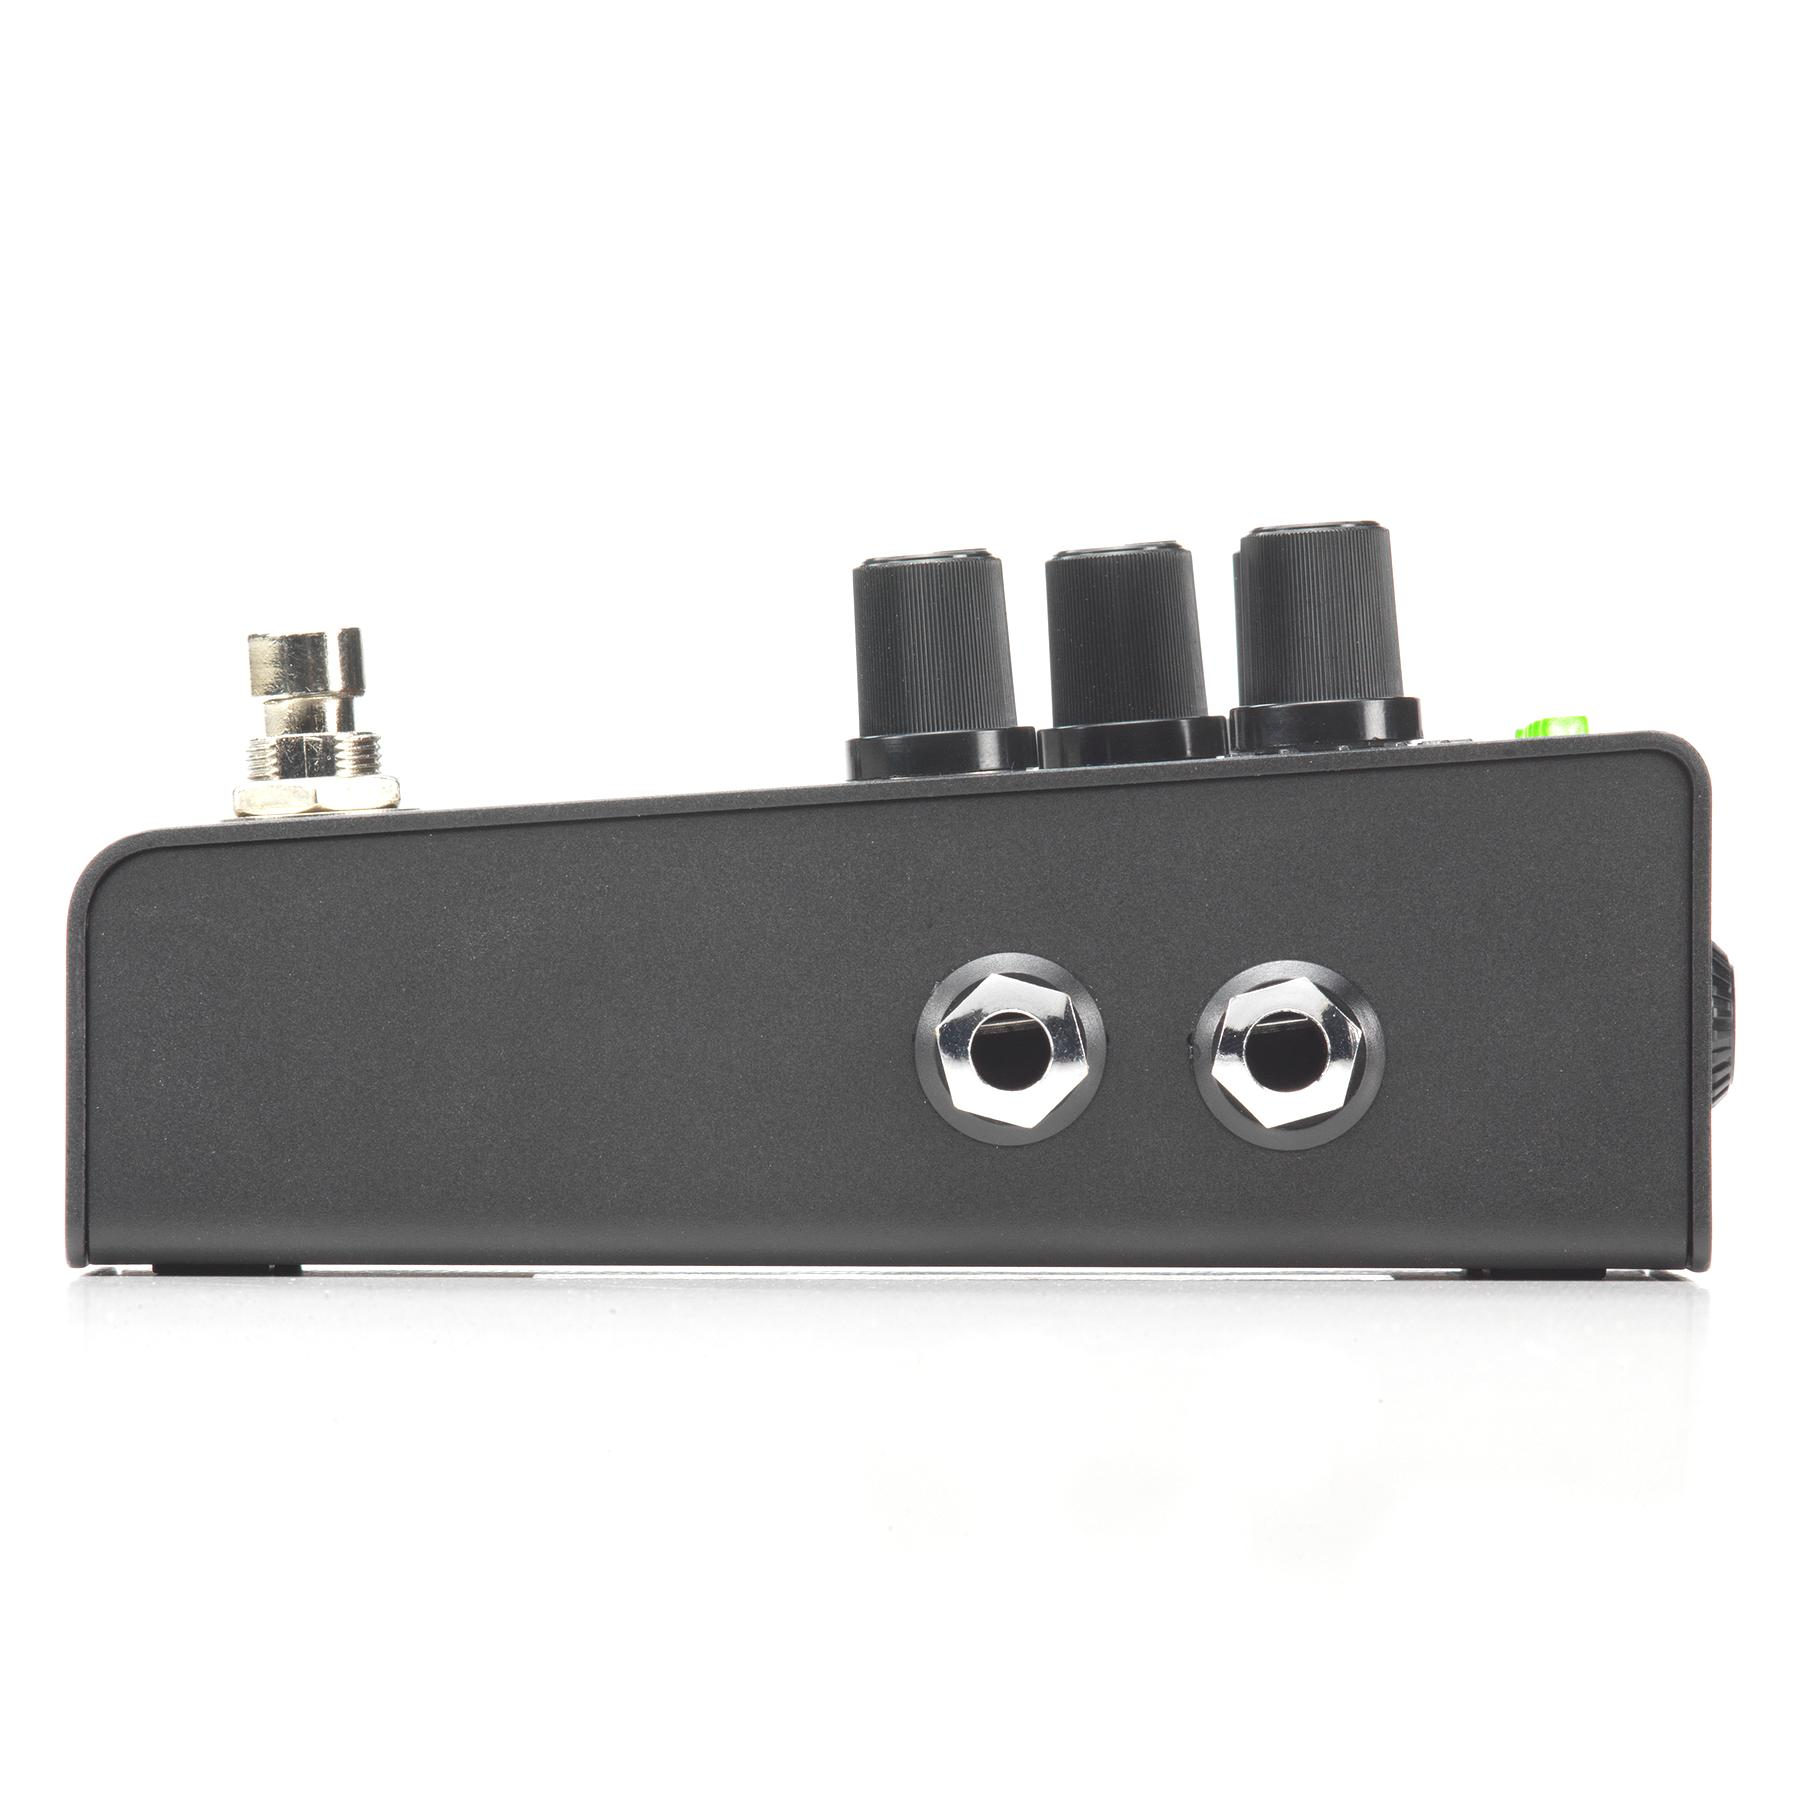 digitech trio electric guitar multi effect band creator pedal power supply included. Black Bedroom Furniture Sets. Home Design Ideas